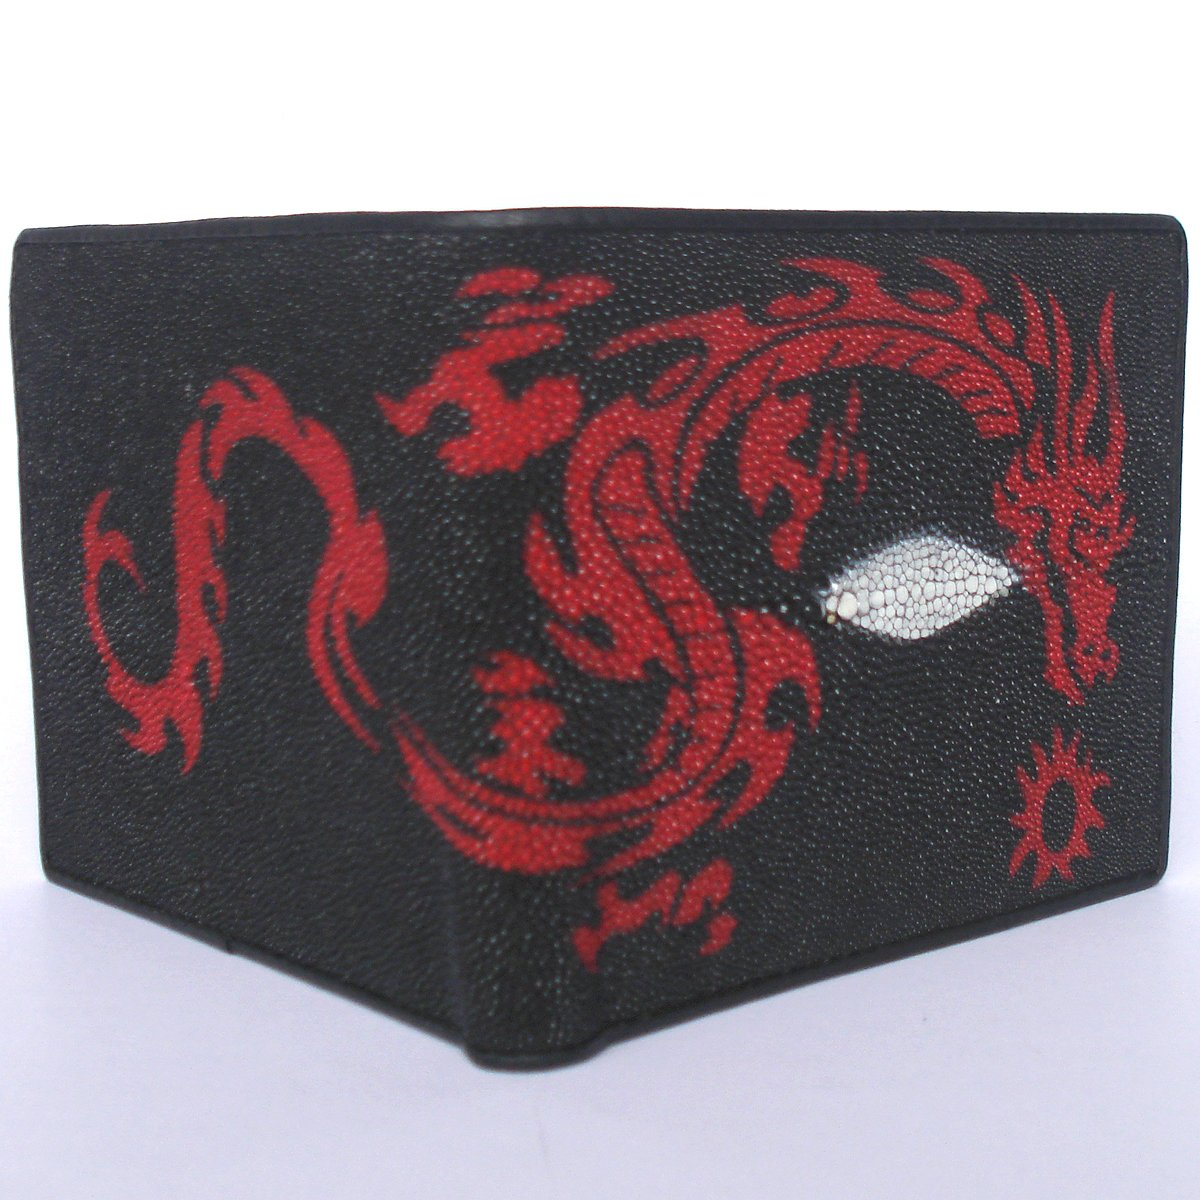 c01c8cd64c52 100 % Genuine Stingray Leather Bifold Men's Wallet with Beautiful Dragon  from Thailand